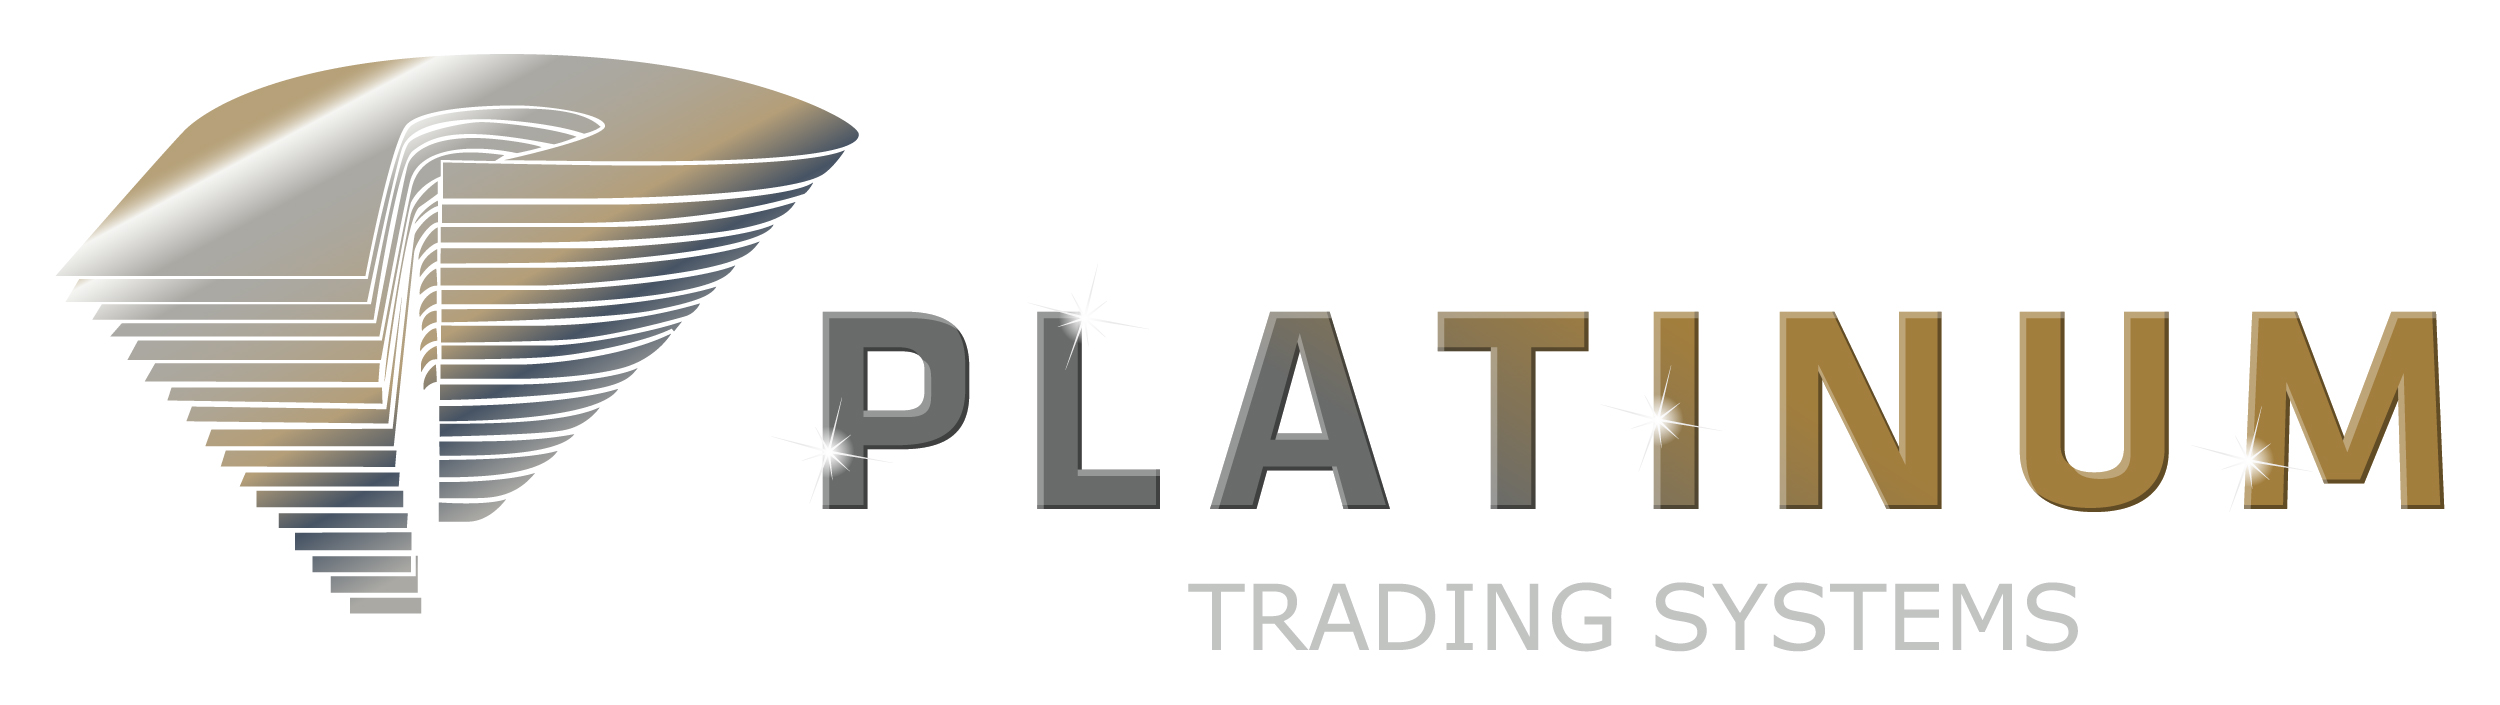 Forex platinum trading group